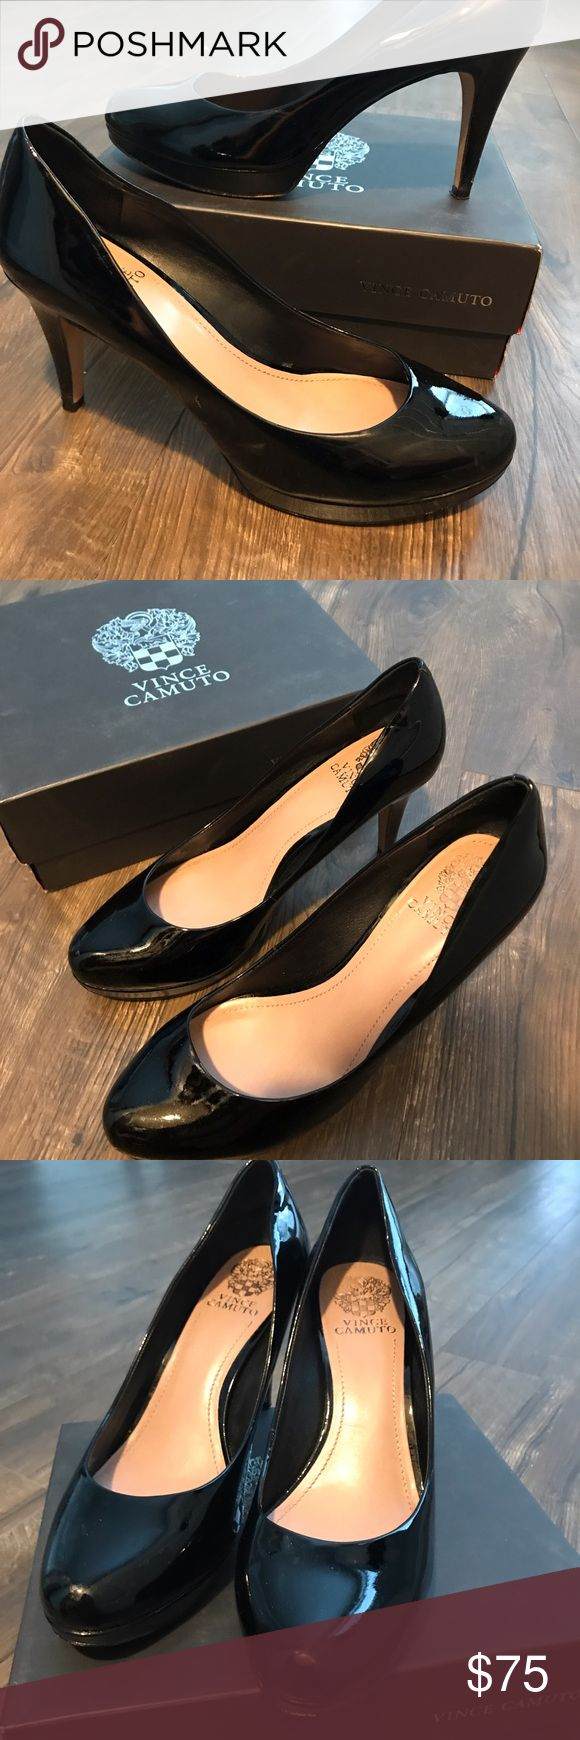 Vince Camuto Black Patent High Heels Vince Camuto Black Patent high heels with half inch platform. 3 inch heel. Mint condition. Vince Camuto Shoes Heels